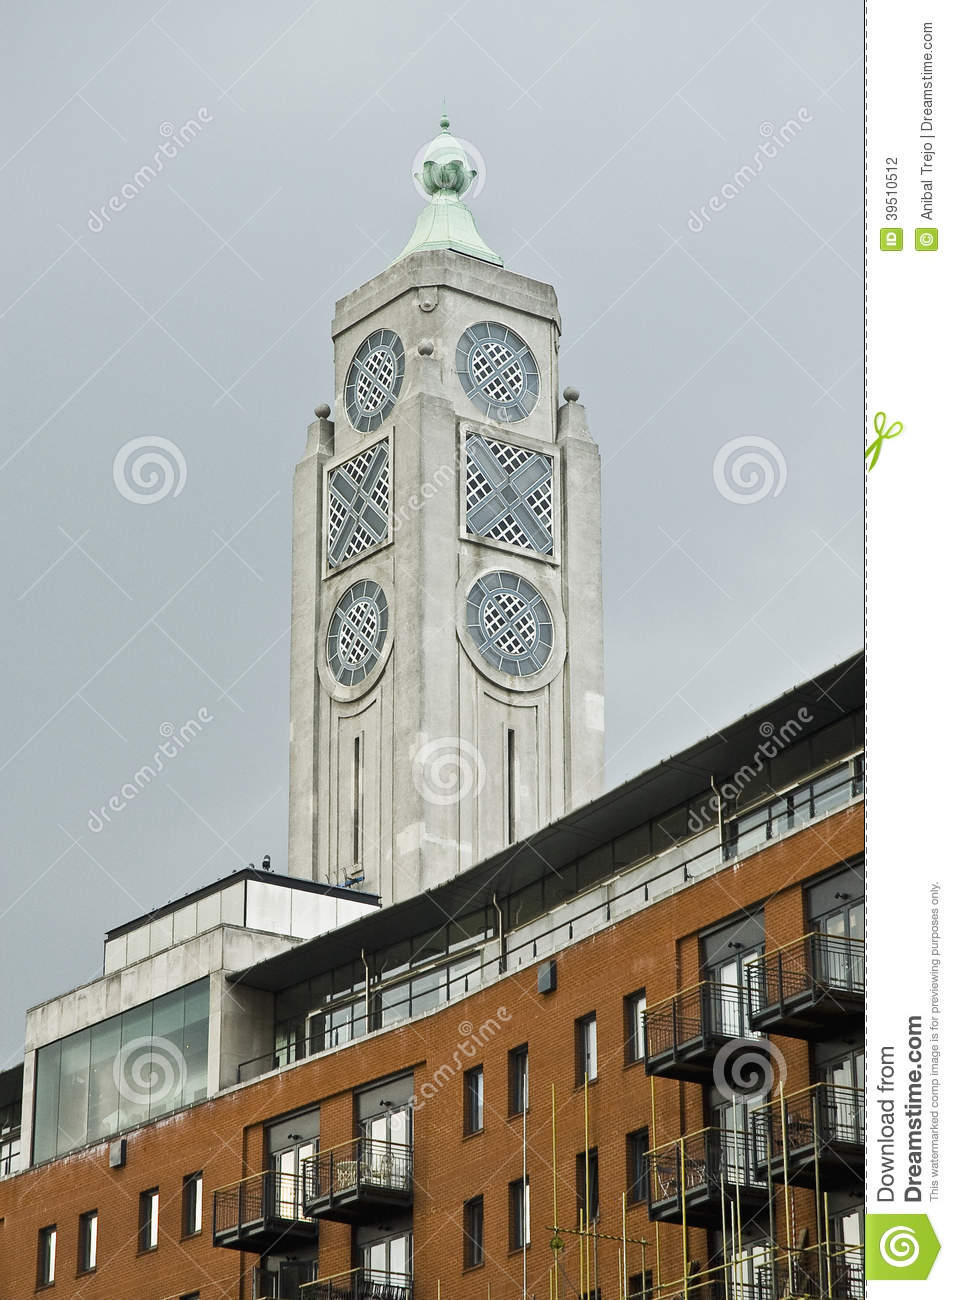 Oxo Tower building at London